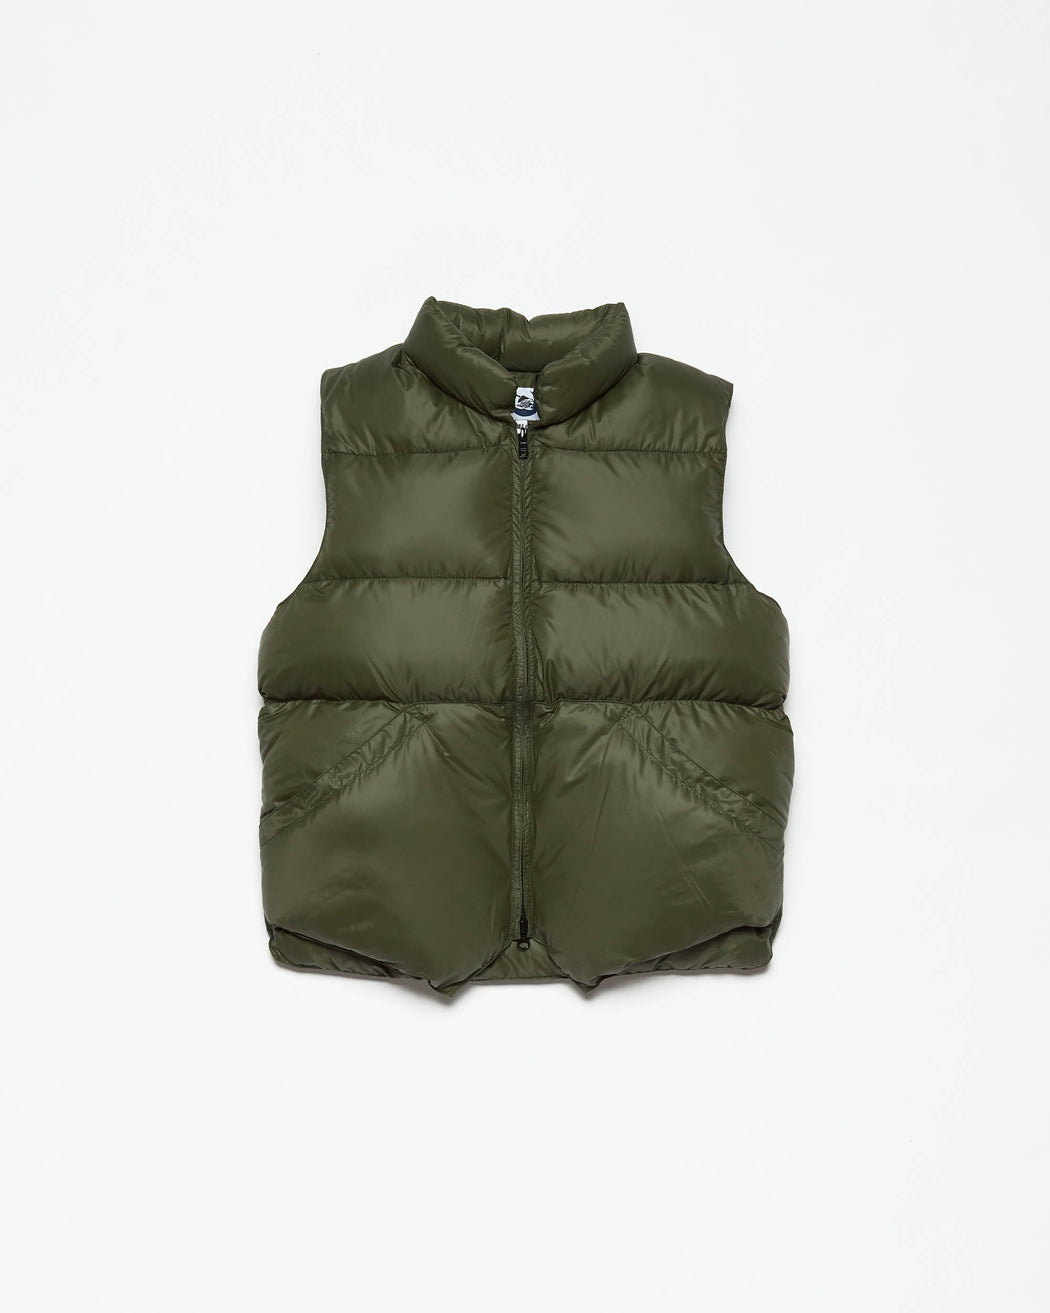 North by Northwest Vest - Olive